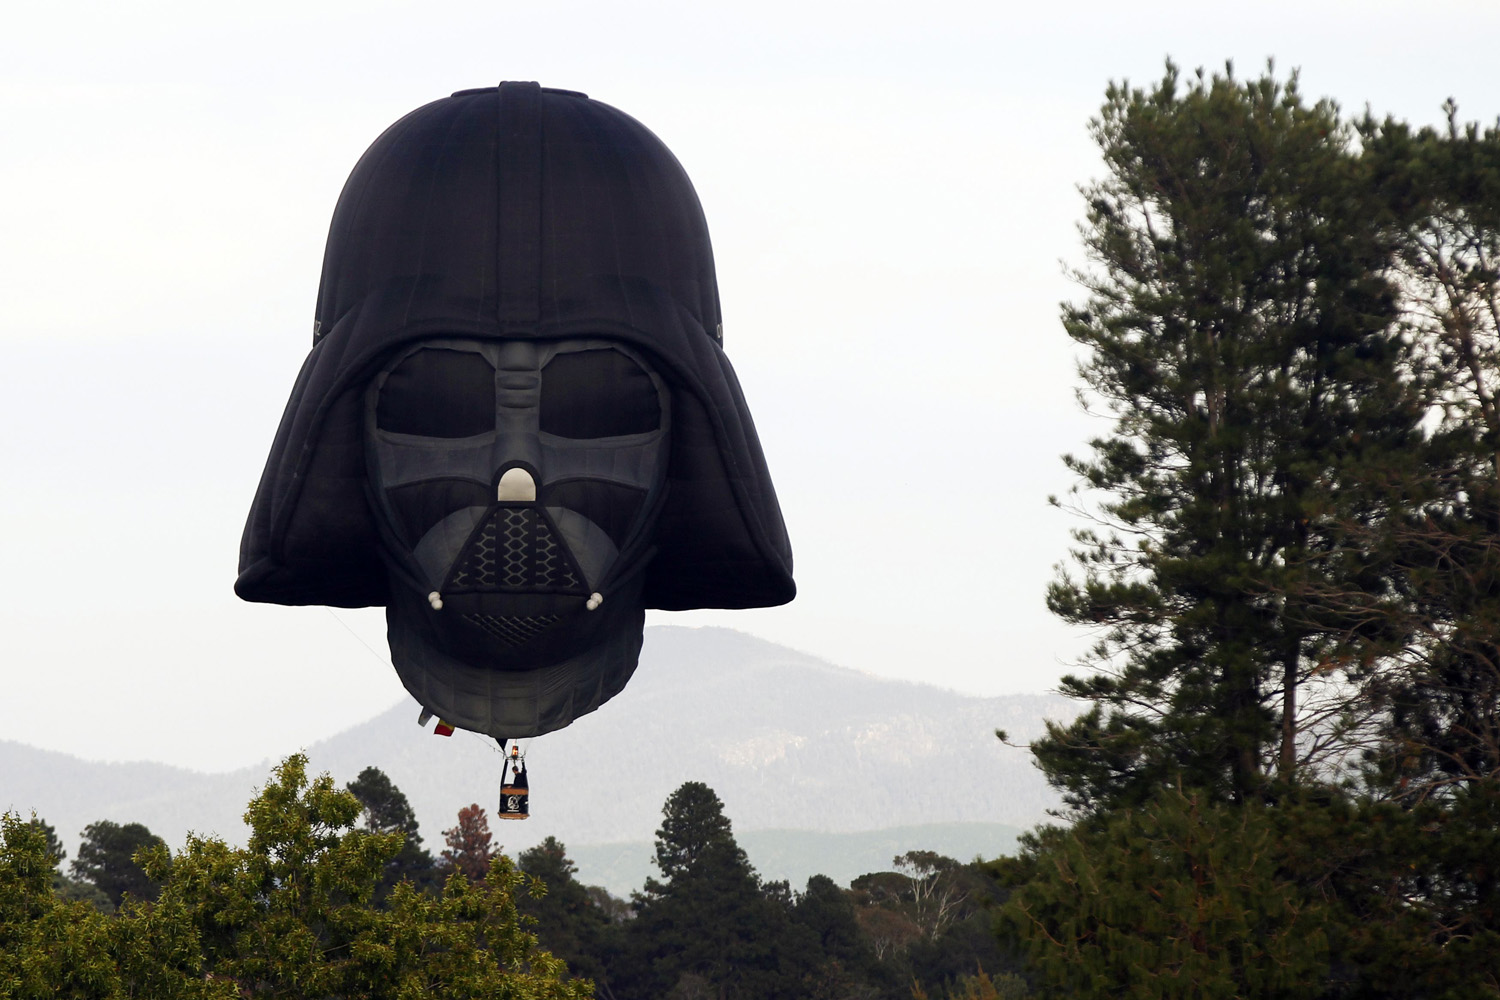 March 9, 2013. A hot air balloon shaped like Darth Vader's head lands after a sunrise flight in Canberra, Australia.